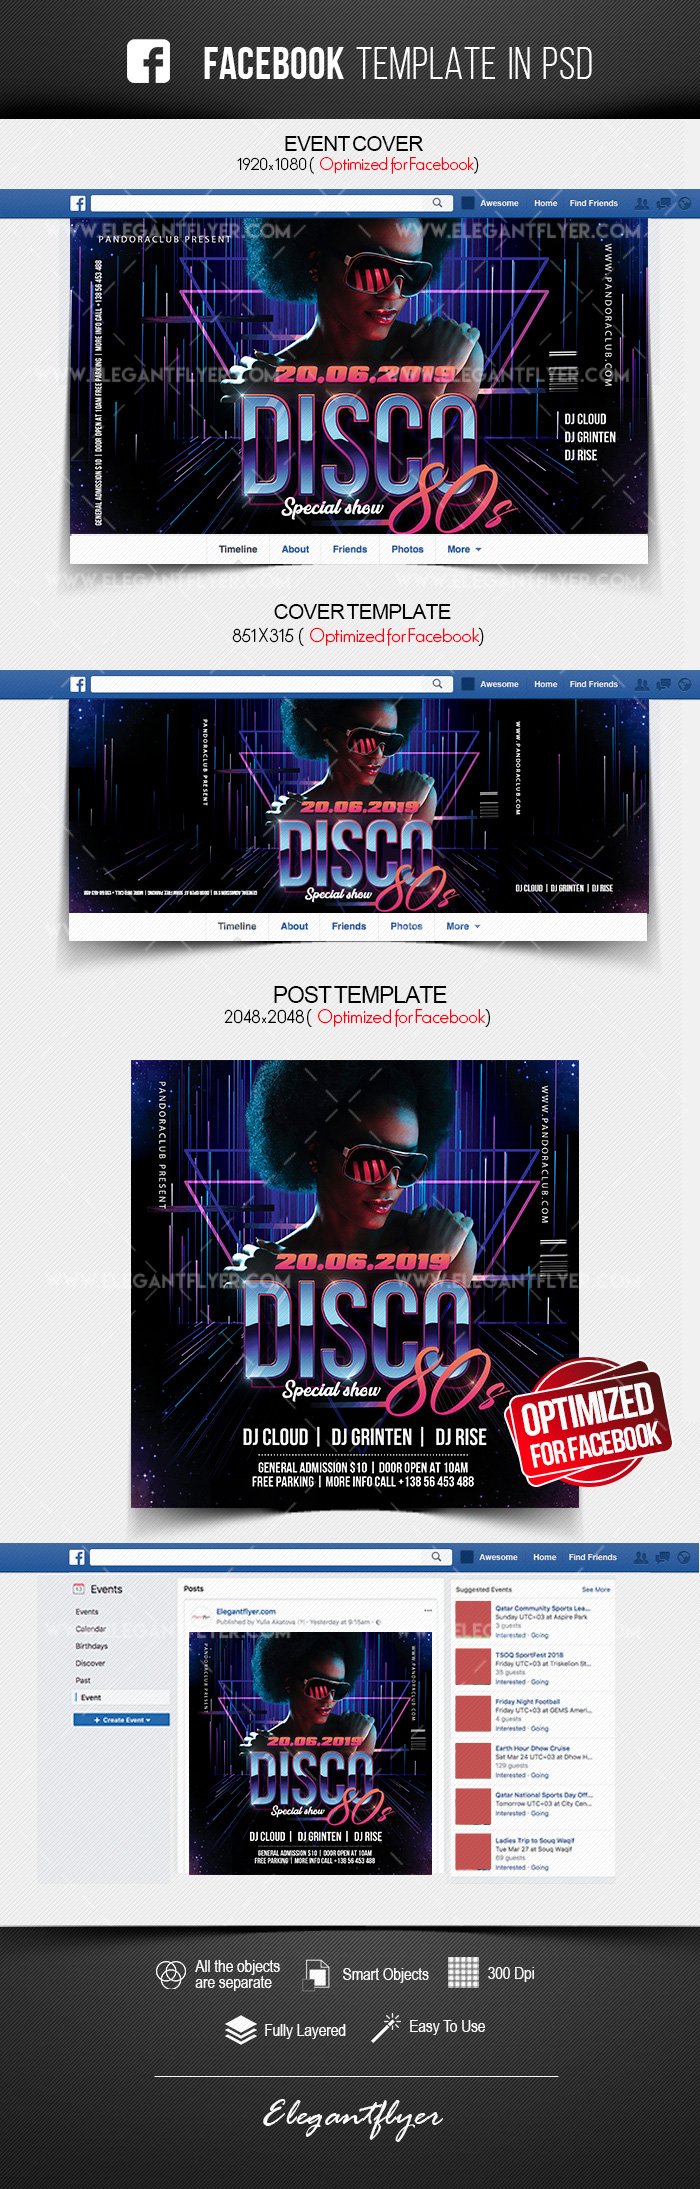 Disco 80s – Facebook Cover Template in PSD + Post + Event cover